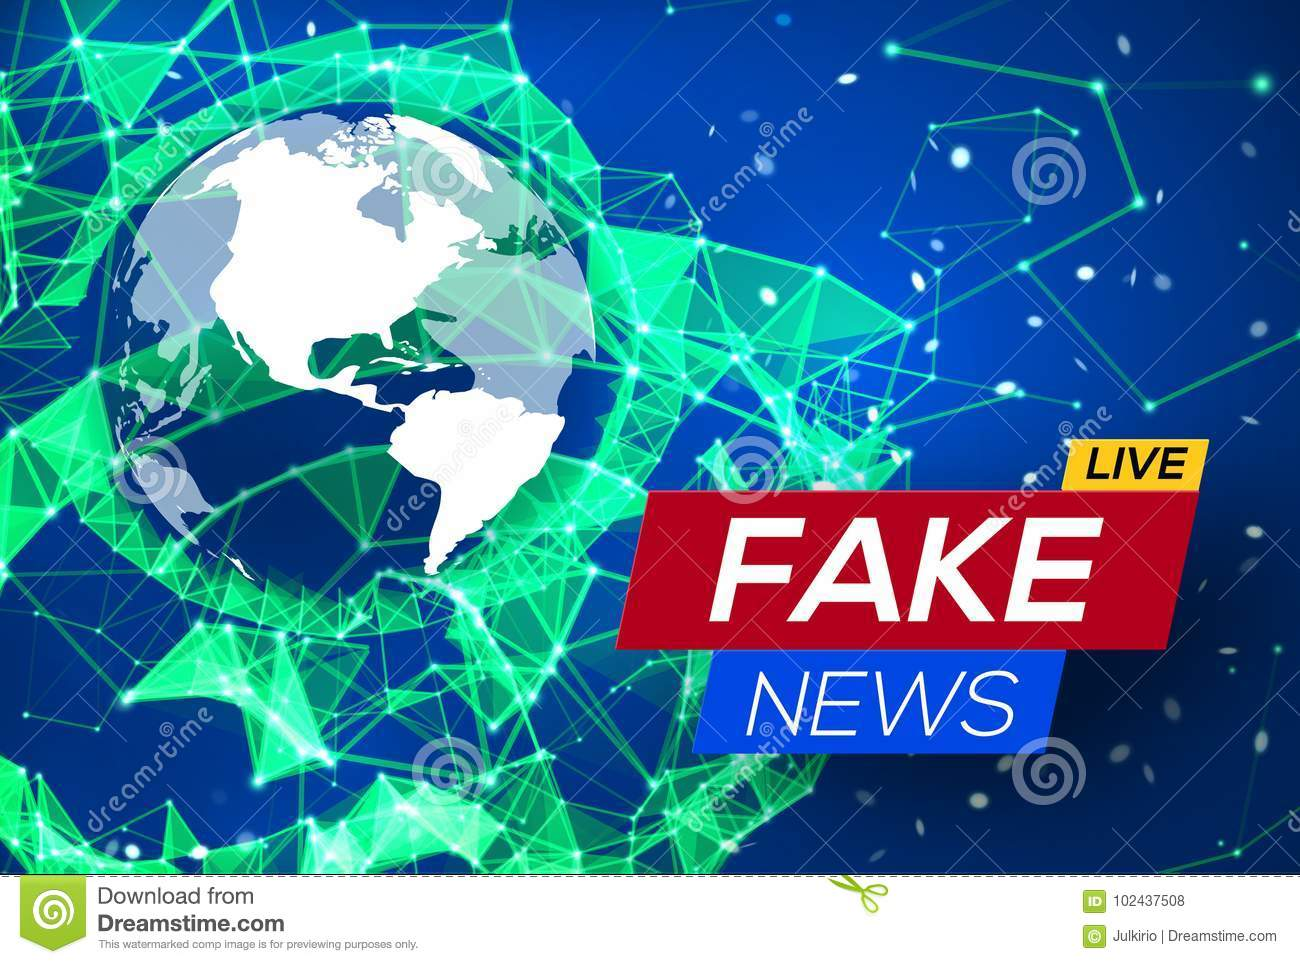 Fake news live with world map on blue background stock vector fake news live with world map on blue glowing plexus structure background business technology news background with earth planet gumiabroncs Gallery